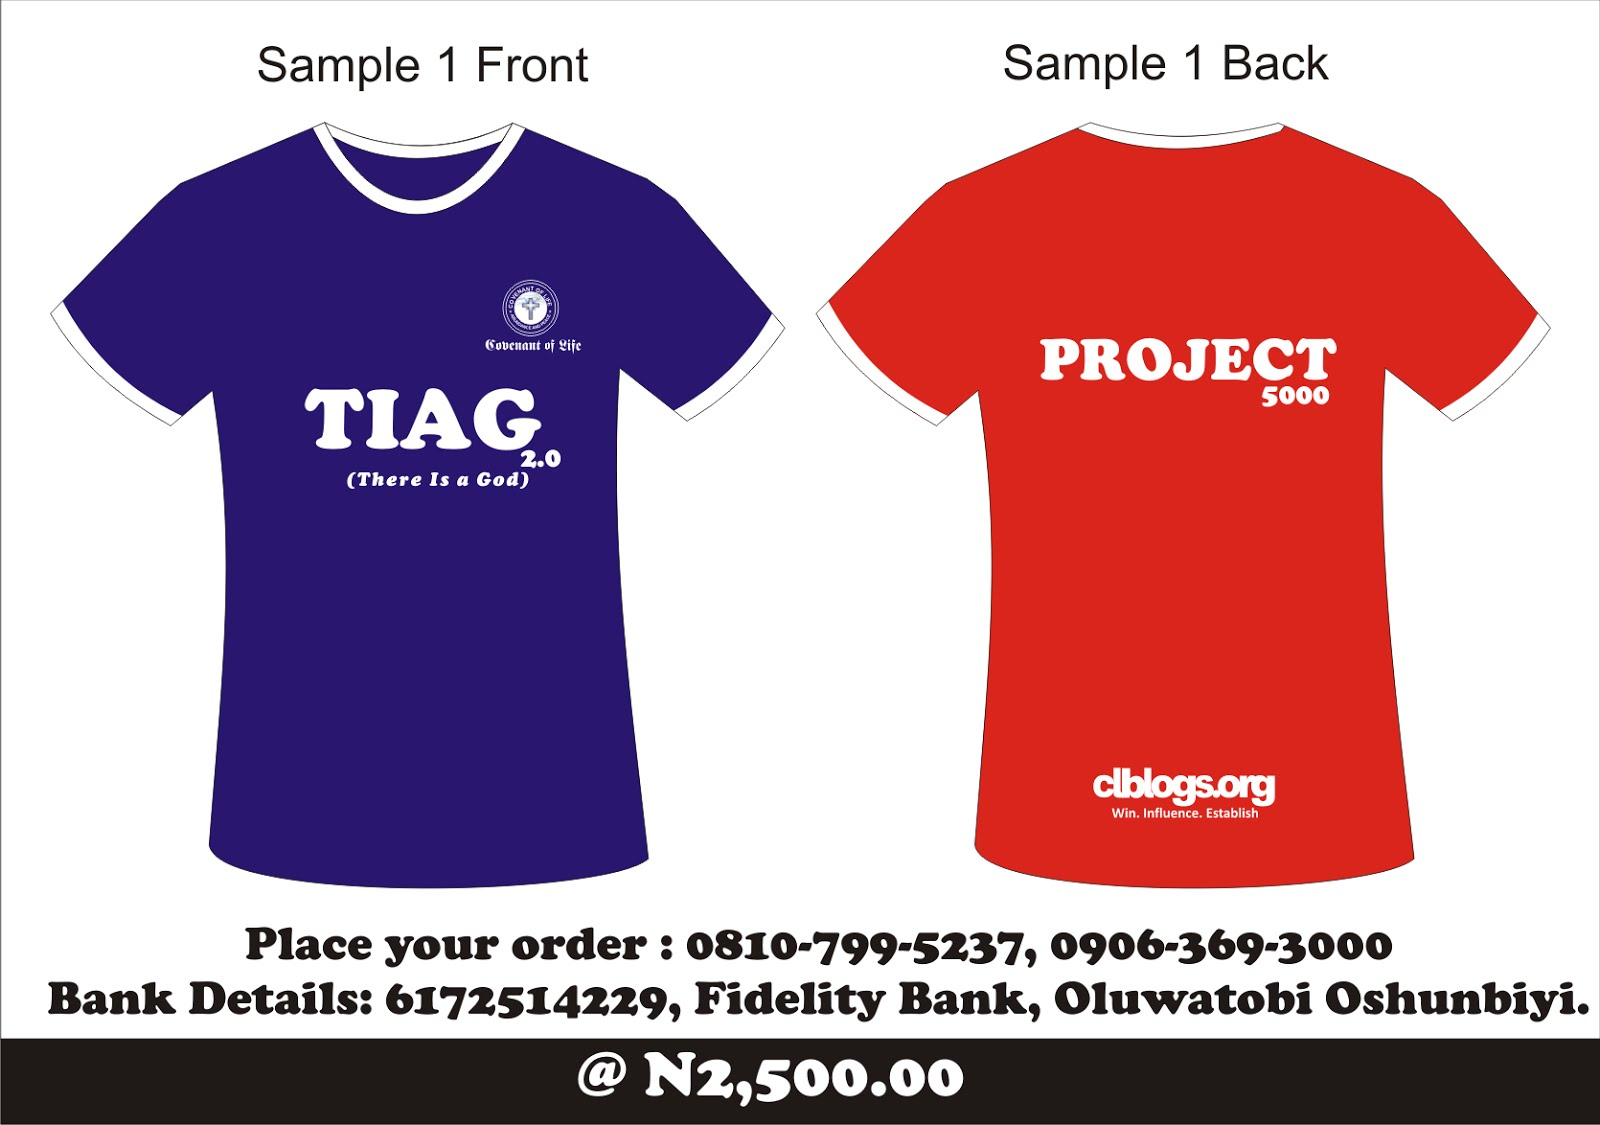 Buy Your PROJECT-5000 T-shirt at our Next Meeting